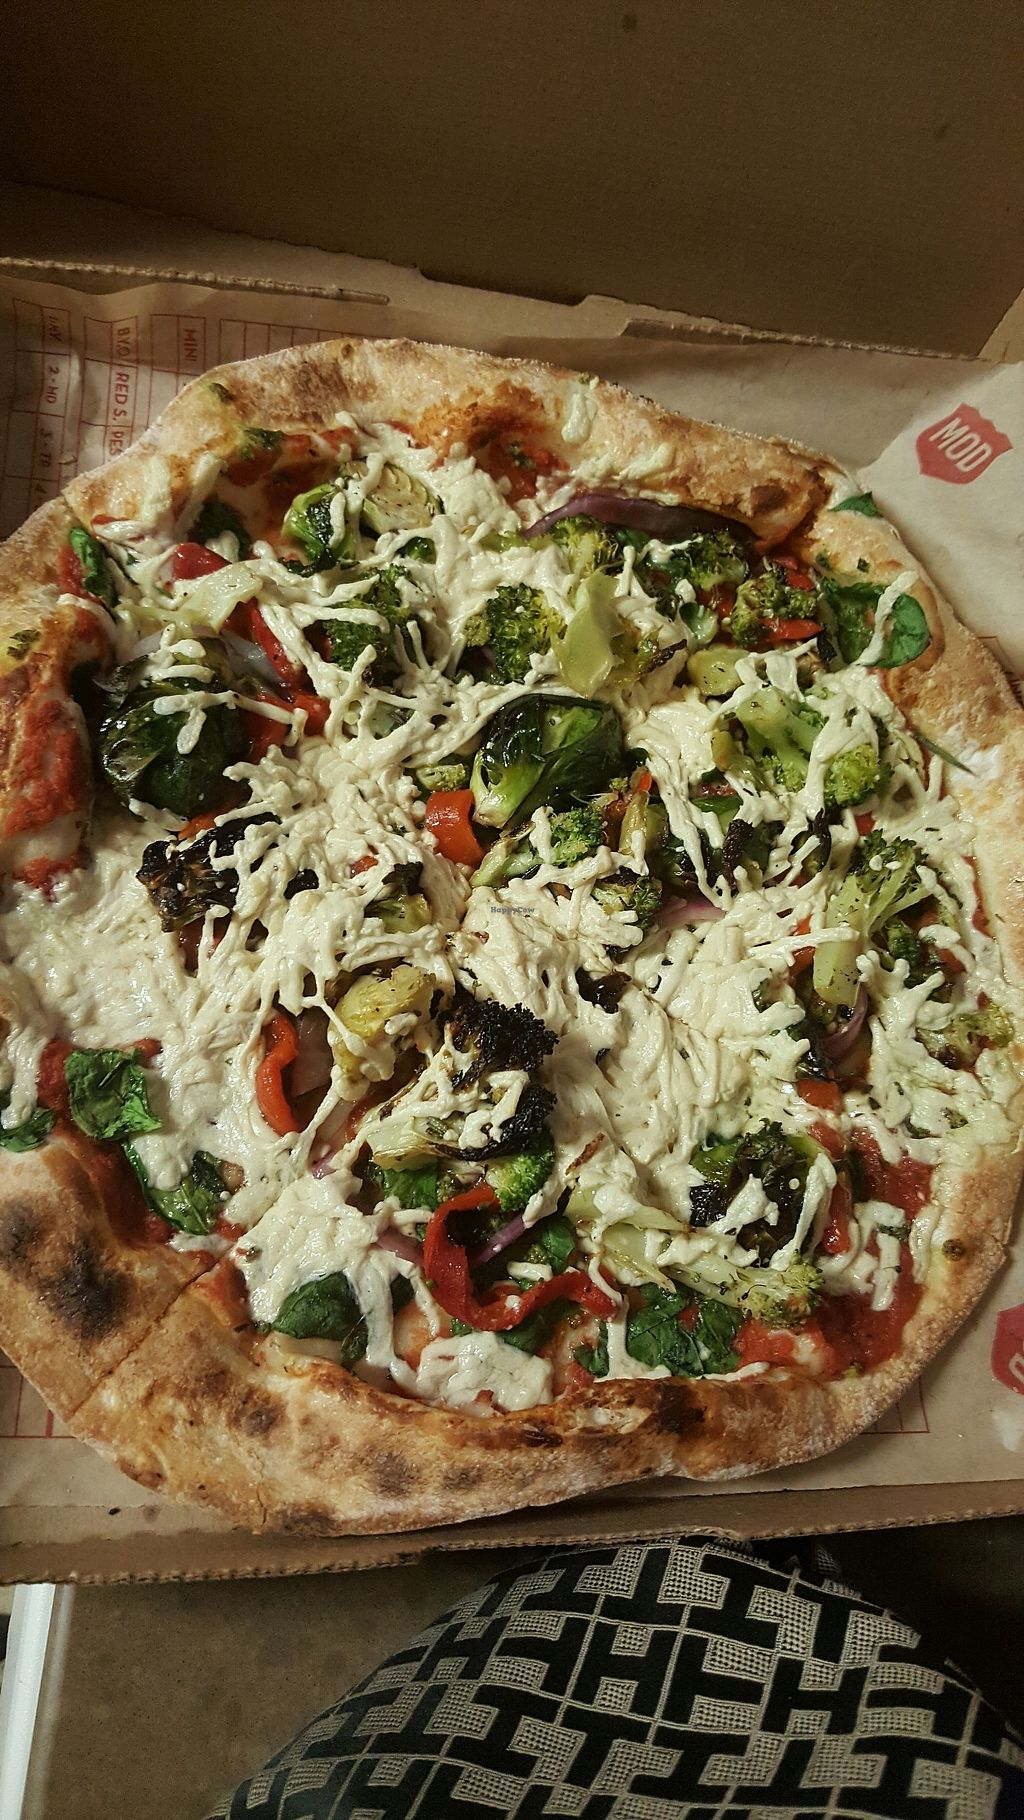 """Photo of Mod Pizza  by <a href=""""/members/profile/RachelSarahGeorge"""">RachelSarahGeorge</a> <br/>the crispy crust is the best! <br/> December 17, 2017  - <a href='/contact/abuse/image/94983/336532'>Report</a>"""